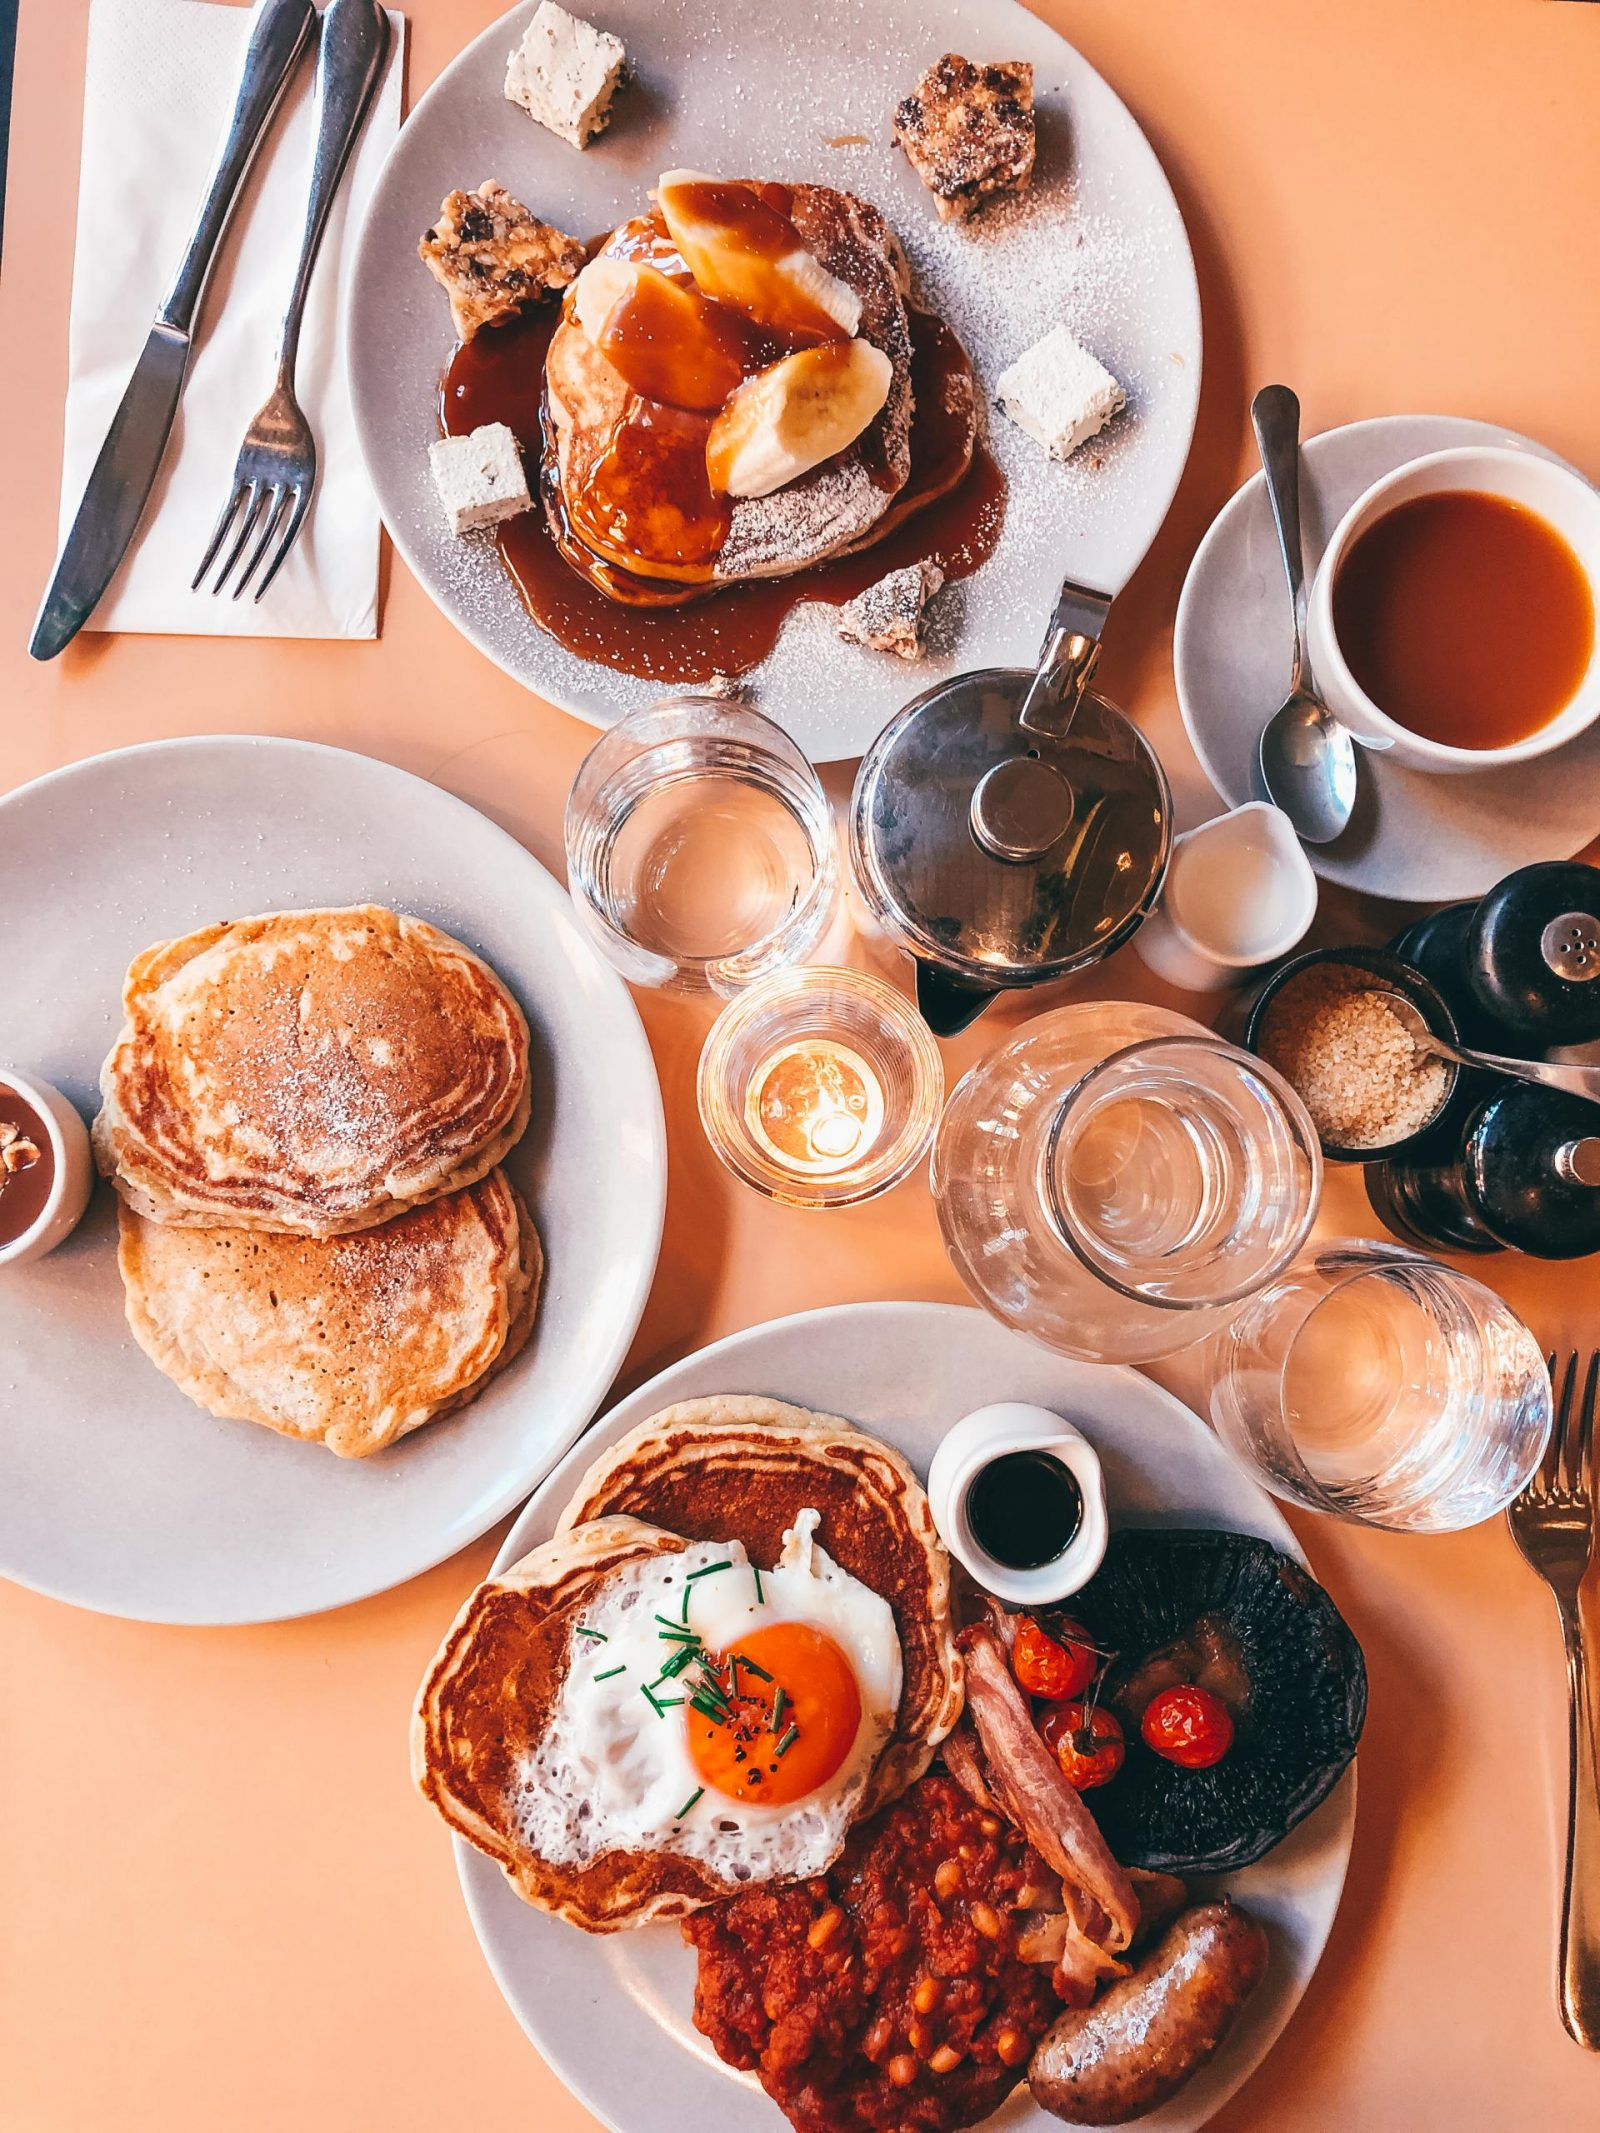 WHERE THE PANCAKES ARE FLATLAY